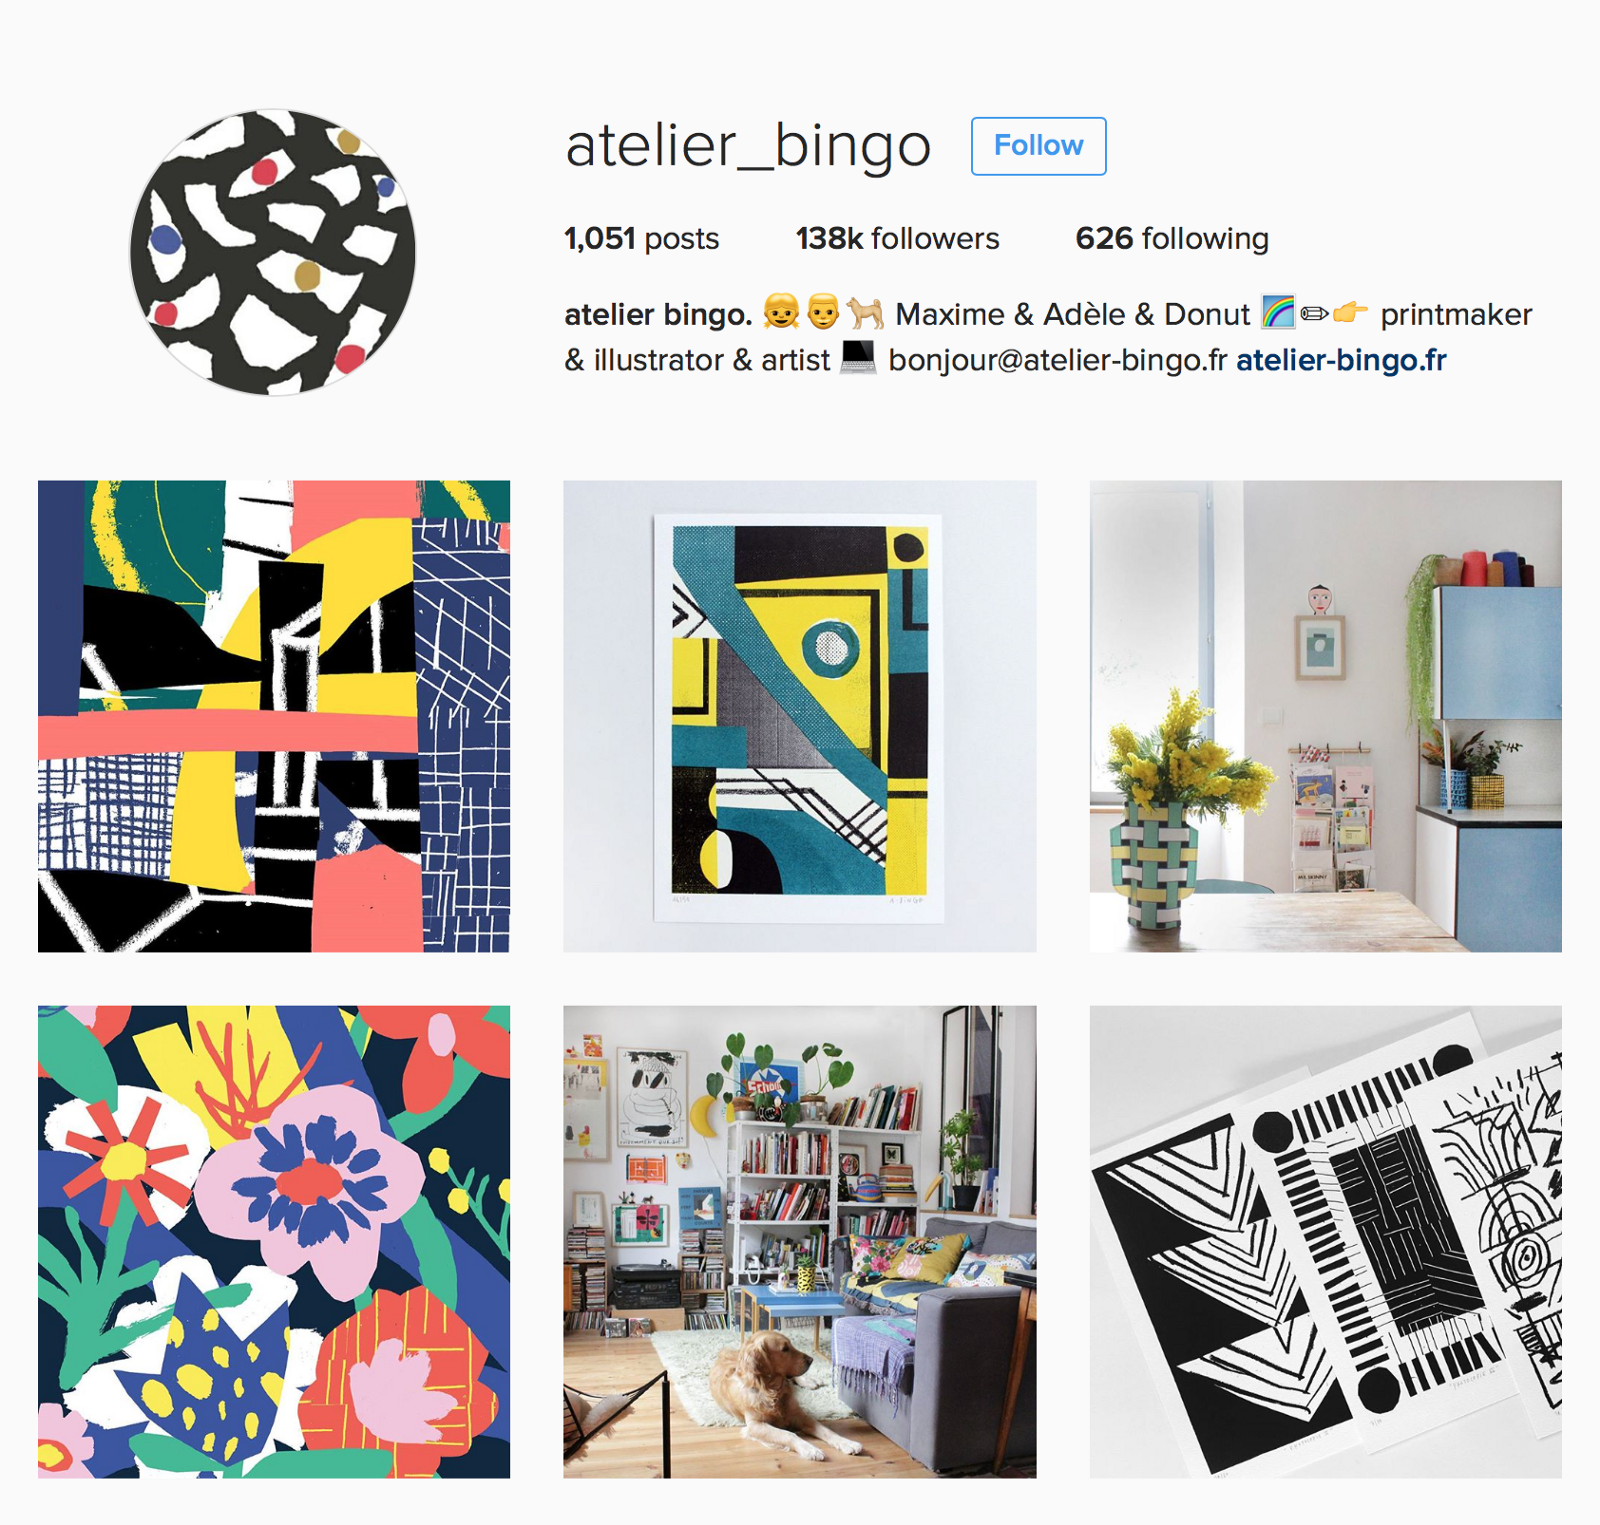 21 Inspiring Image Makers You Should Follow on Instagram